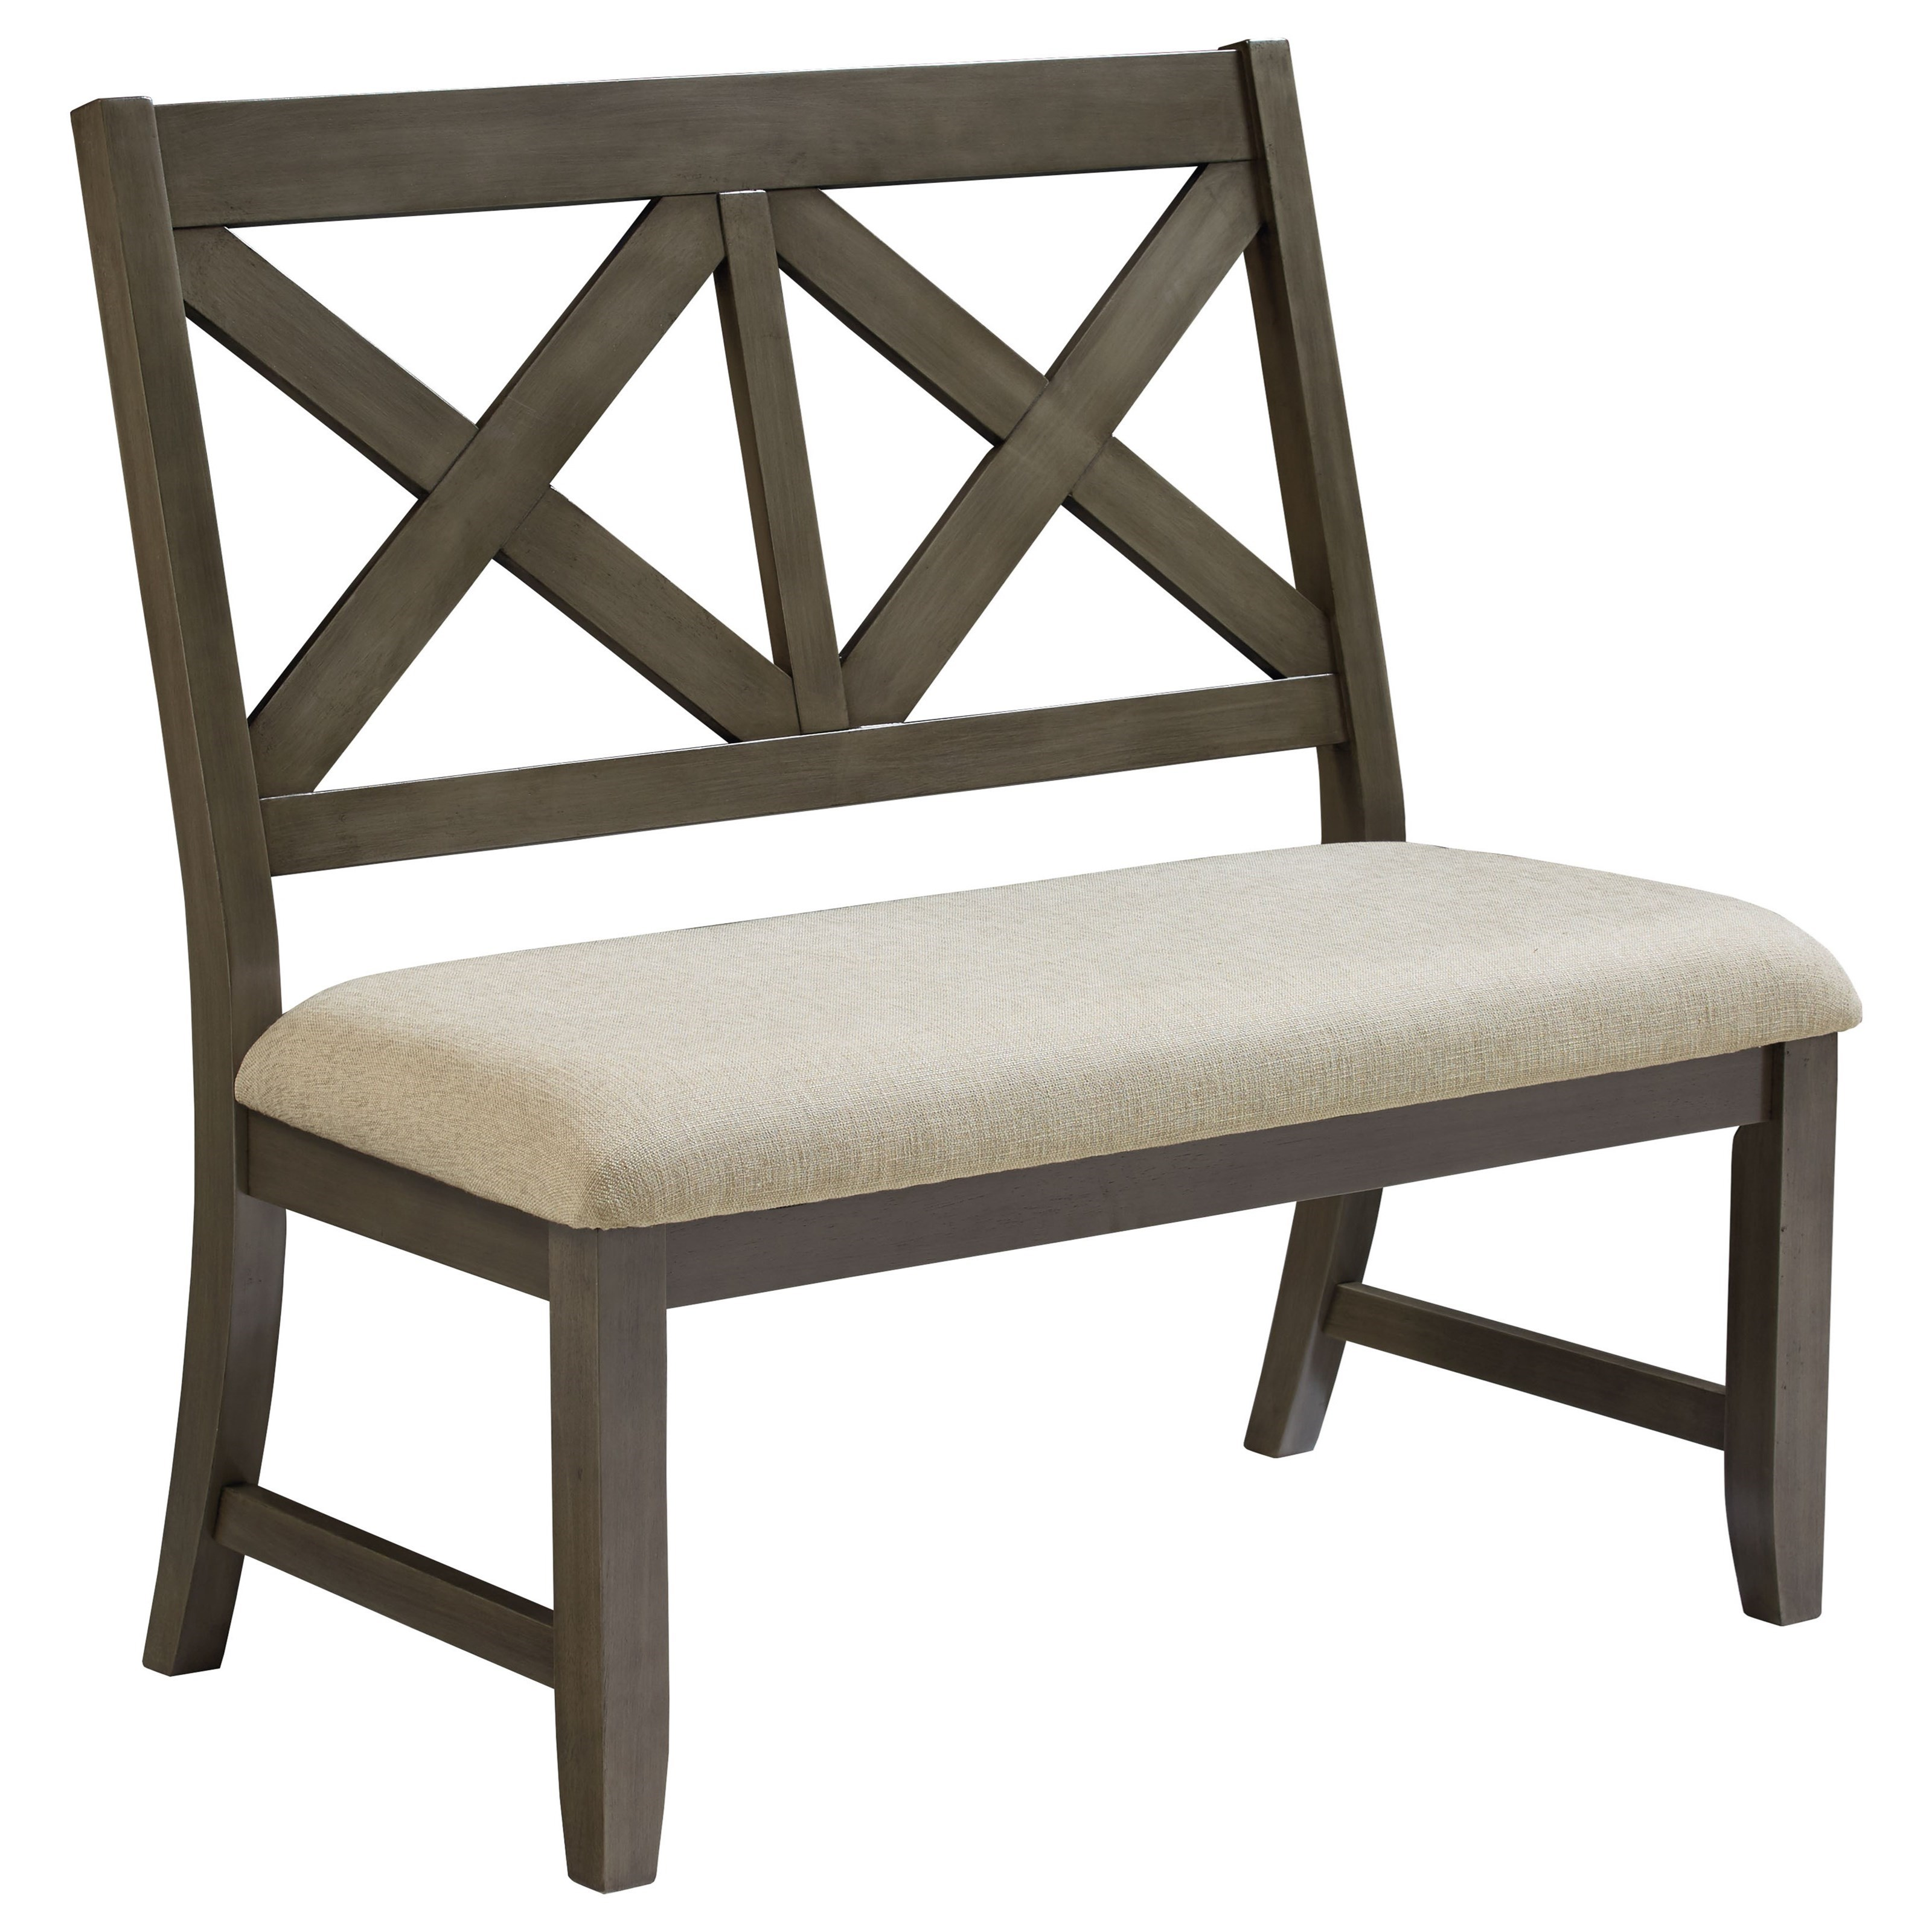 Standard Furniture Omaha Grey 16689 Upholstered Dining